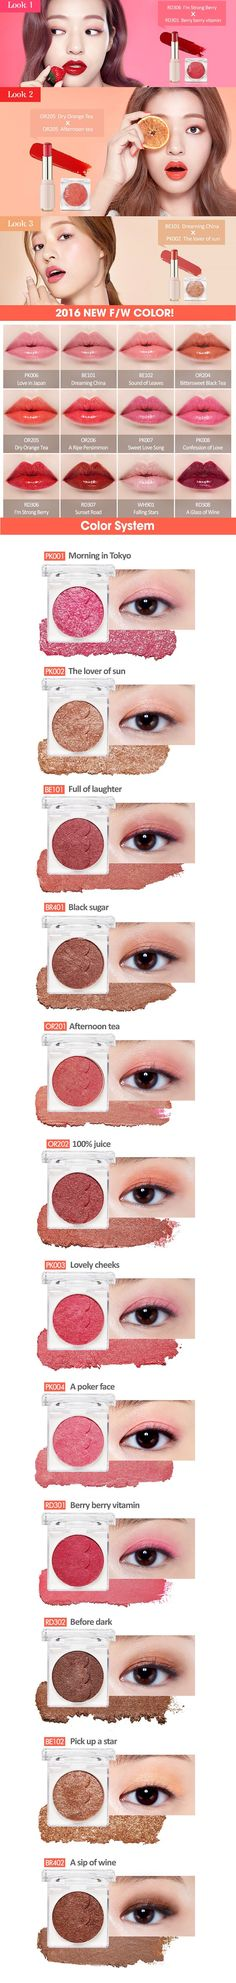 Dear My Enamel Look | ETUDE HOUSE Swatches and Looks